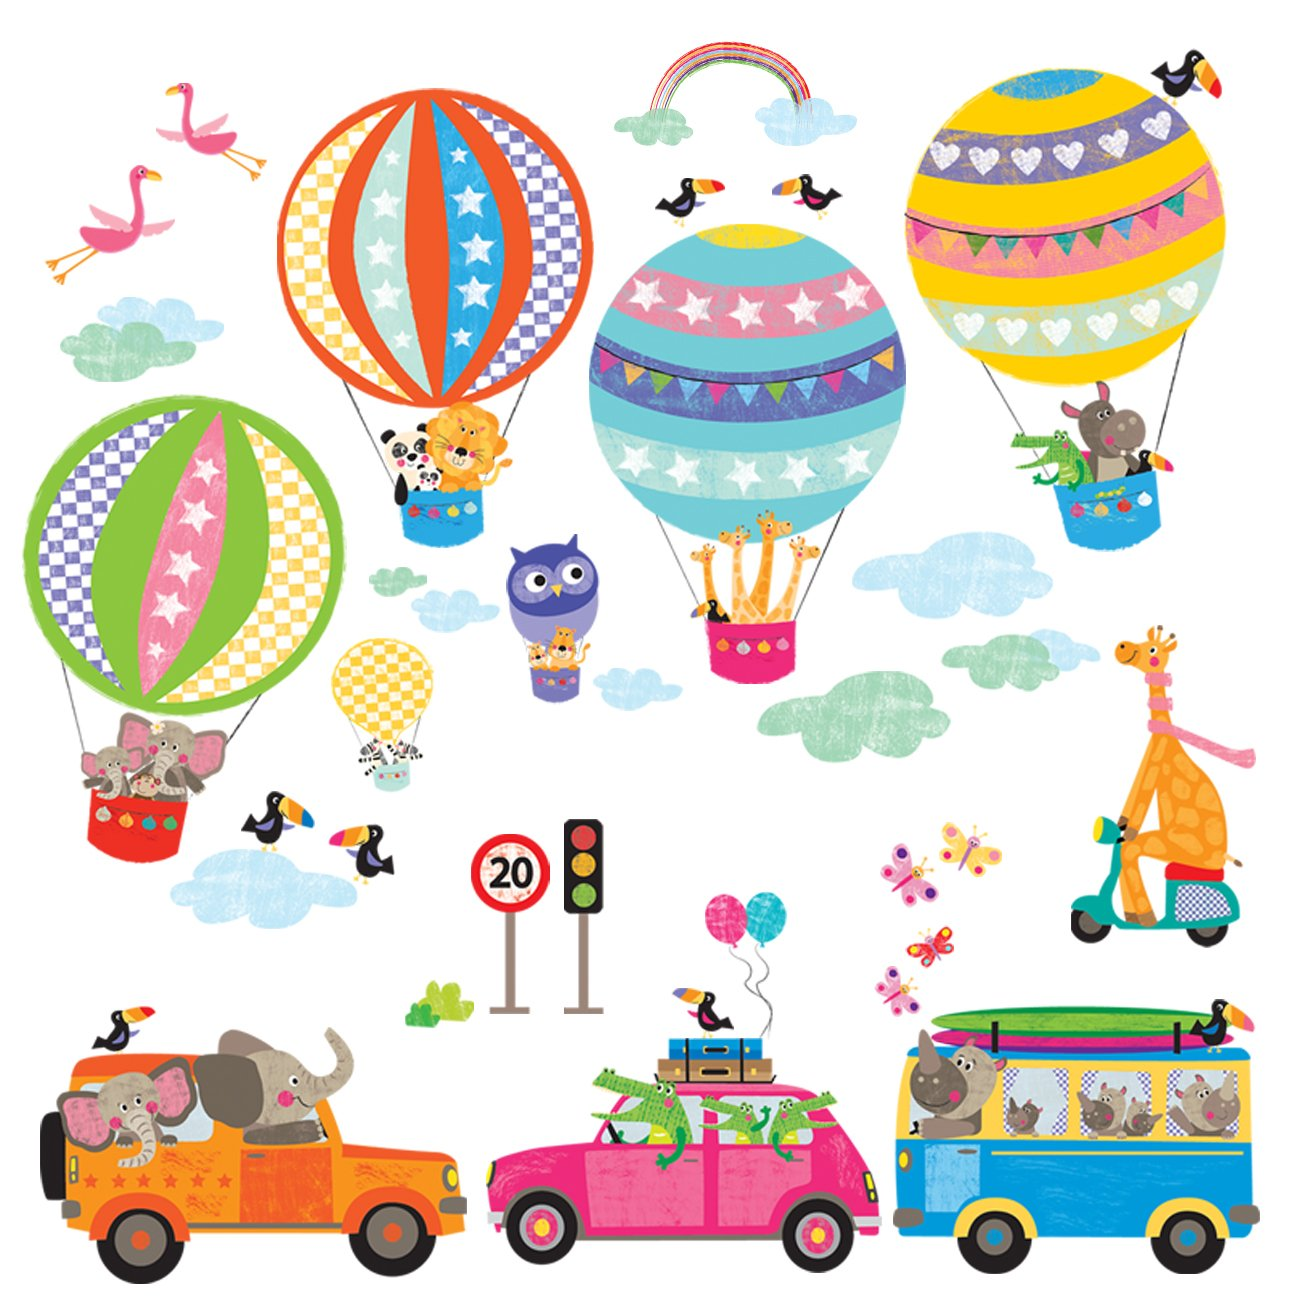 Decowall DAT-1710 Transports Cars Hot Air Balloon Animals Kids Wall Decals Wall Stickers Peel and Stick Removable Wall Stickers for Kids Nursery Bedroom Living Room